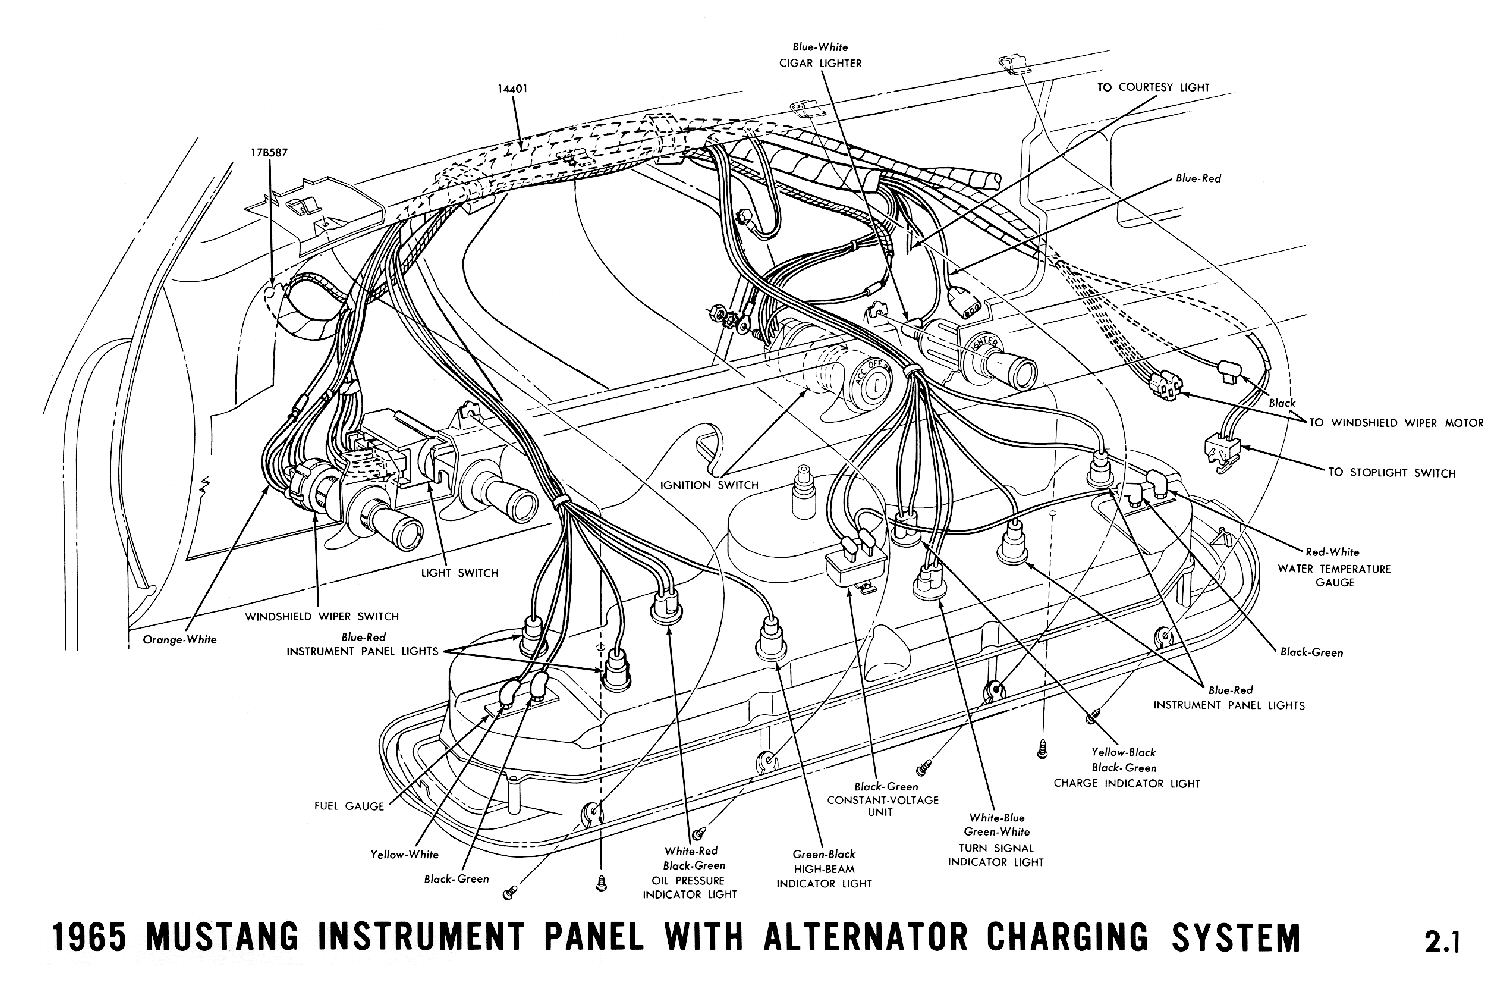 1965a 1965 mustang wiring diagrams average joe restoration 1965 ford mustang wiring diagrams at crackthecode.co